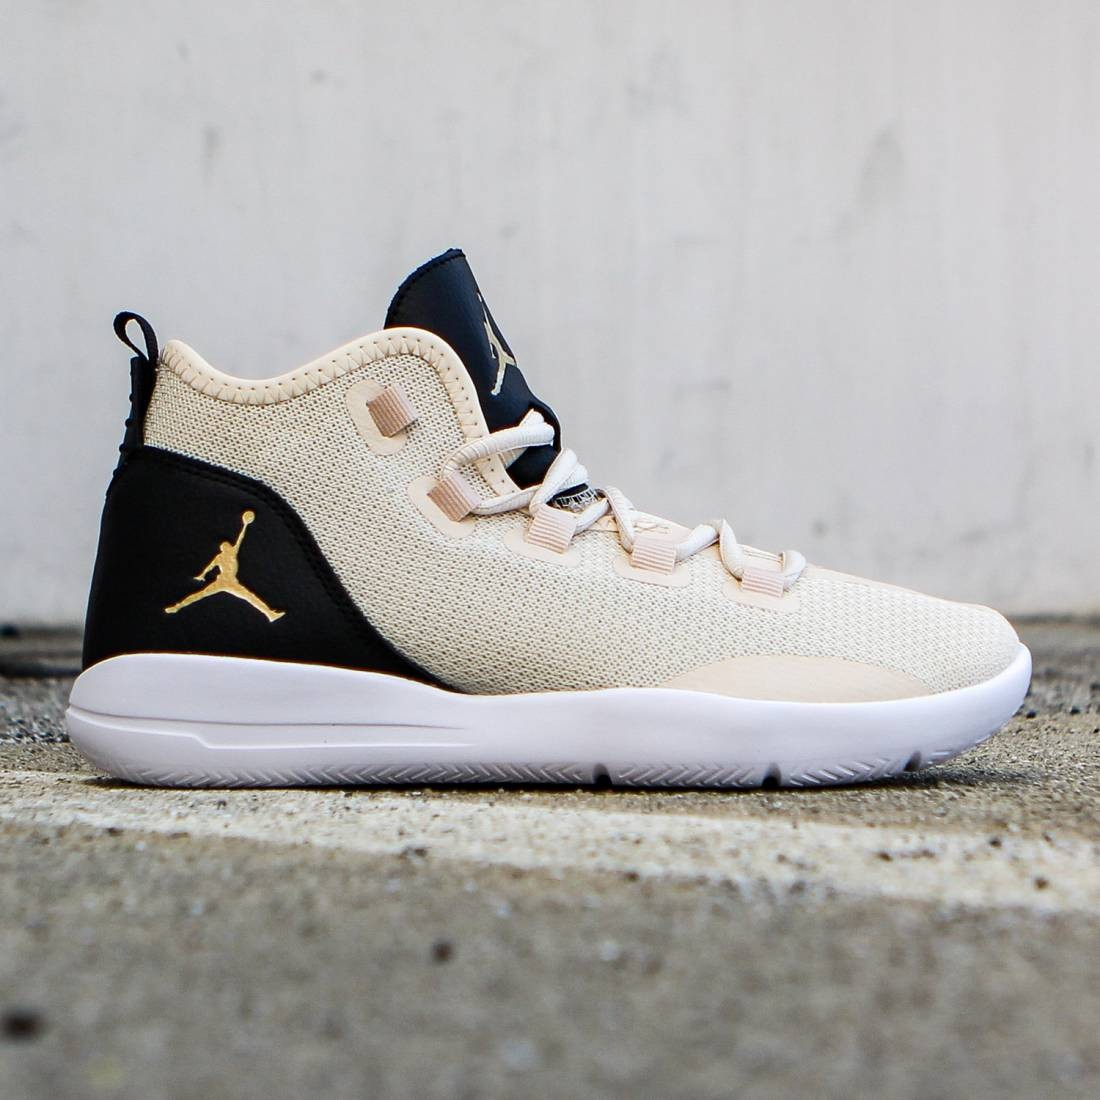 Jordan Big Kids Jordan Reveal Premium HC GS pearl white black white  metallic gold 8b6798d6d